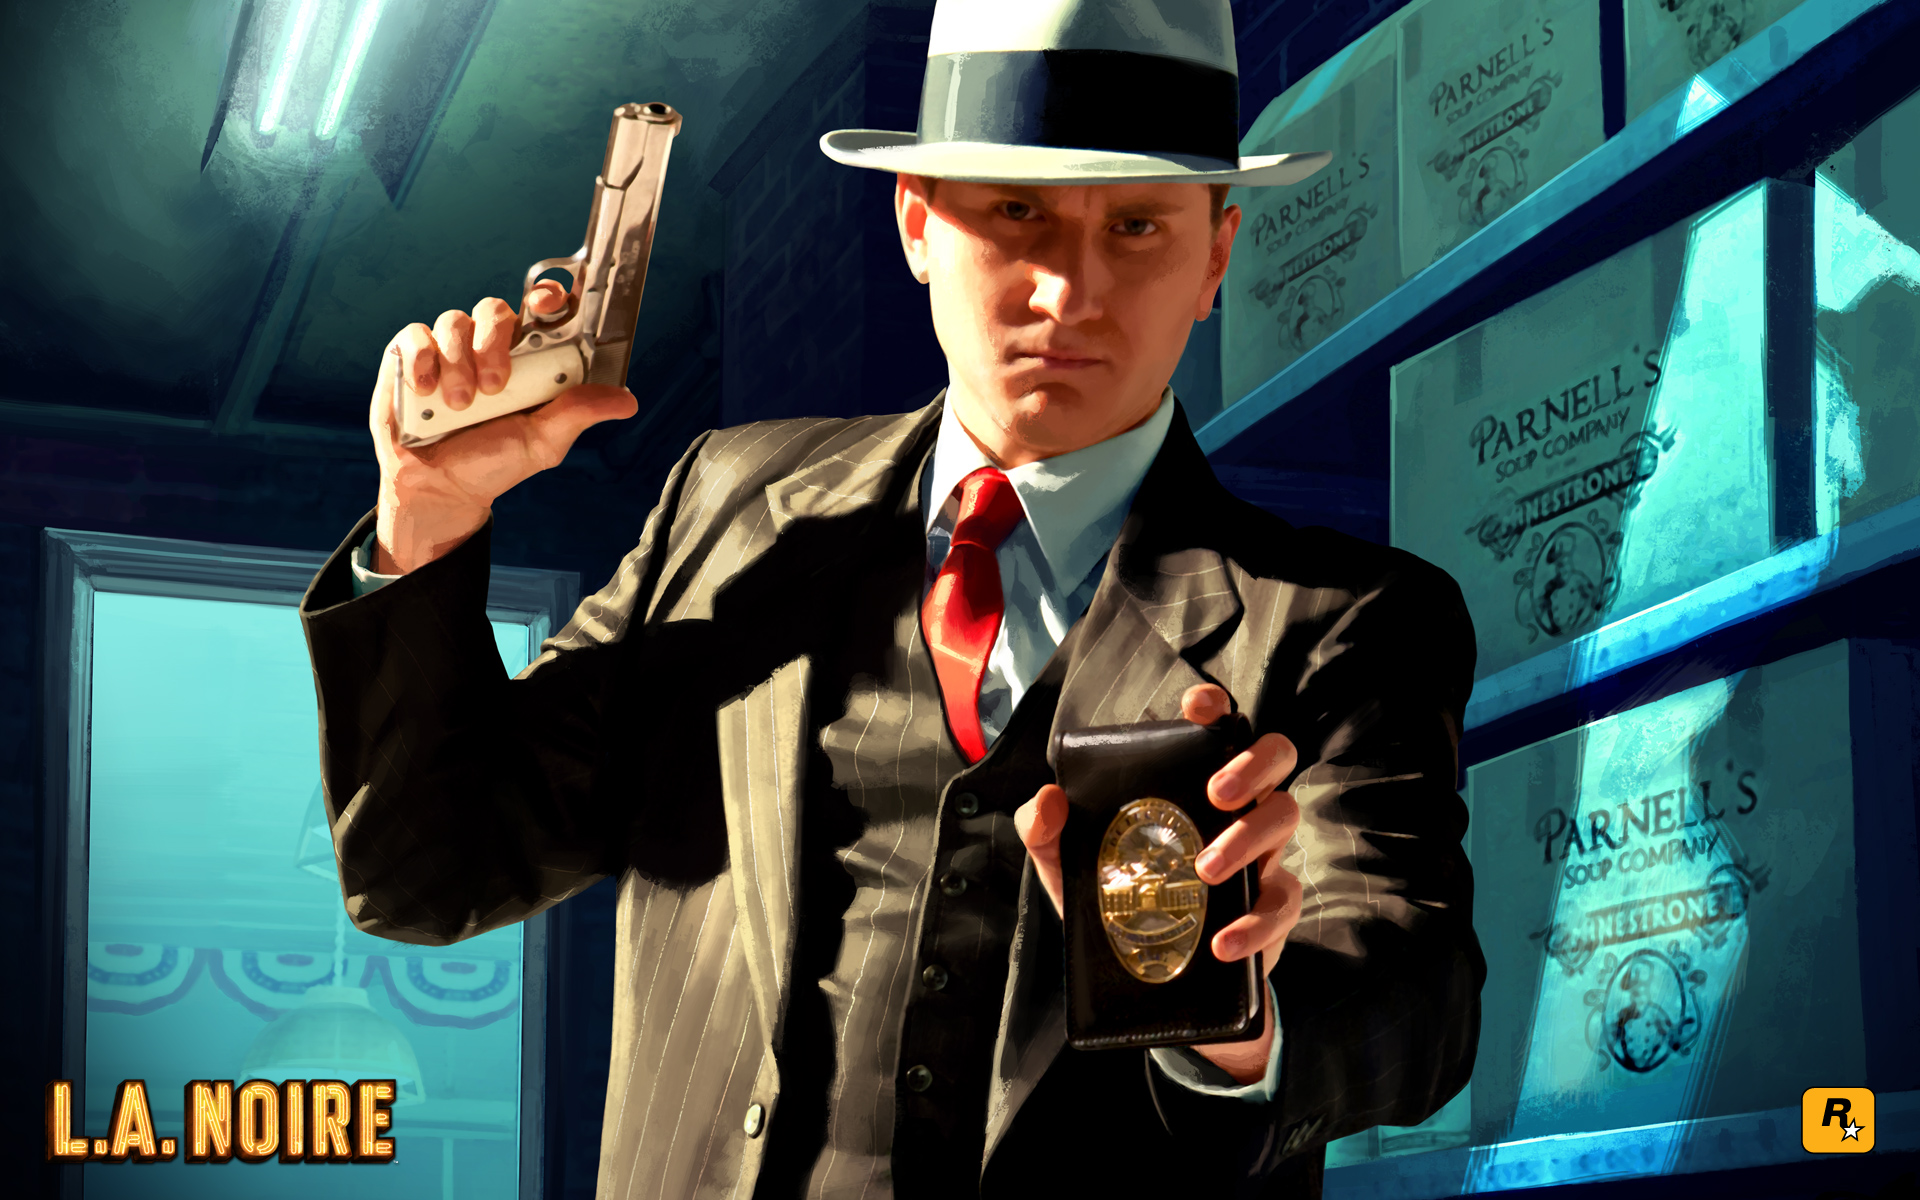 LA Noire: VR Case Files review